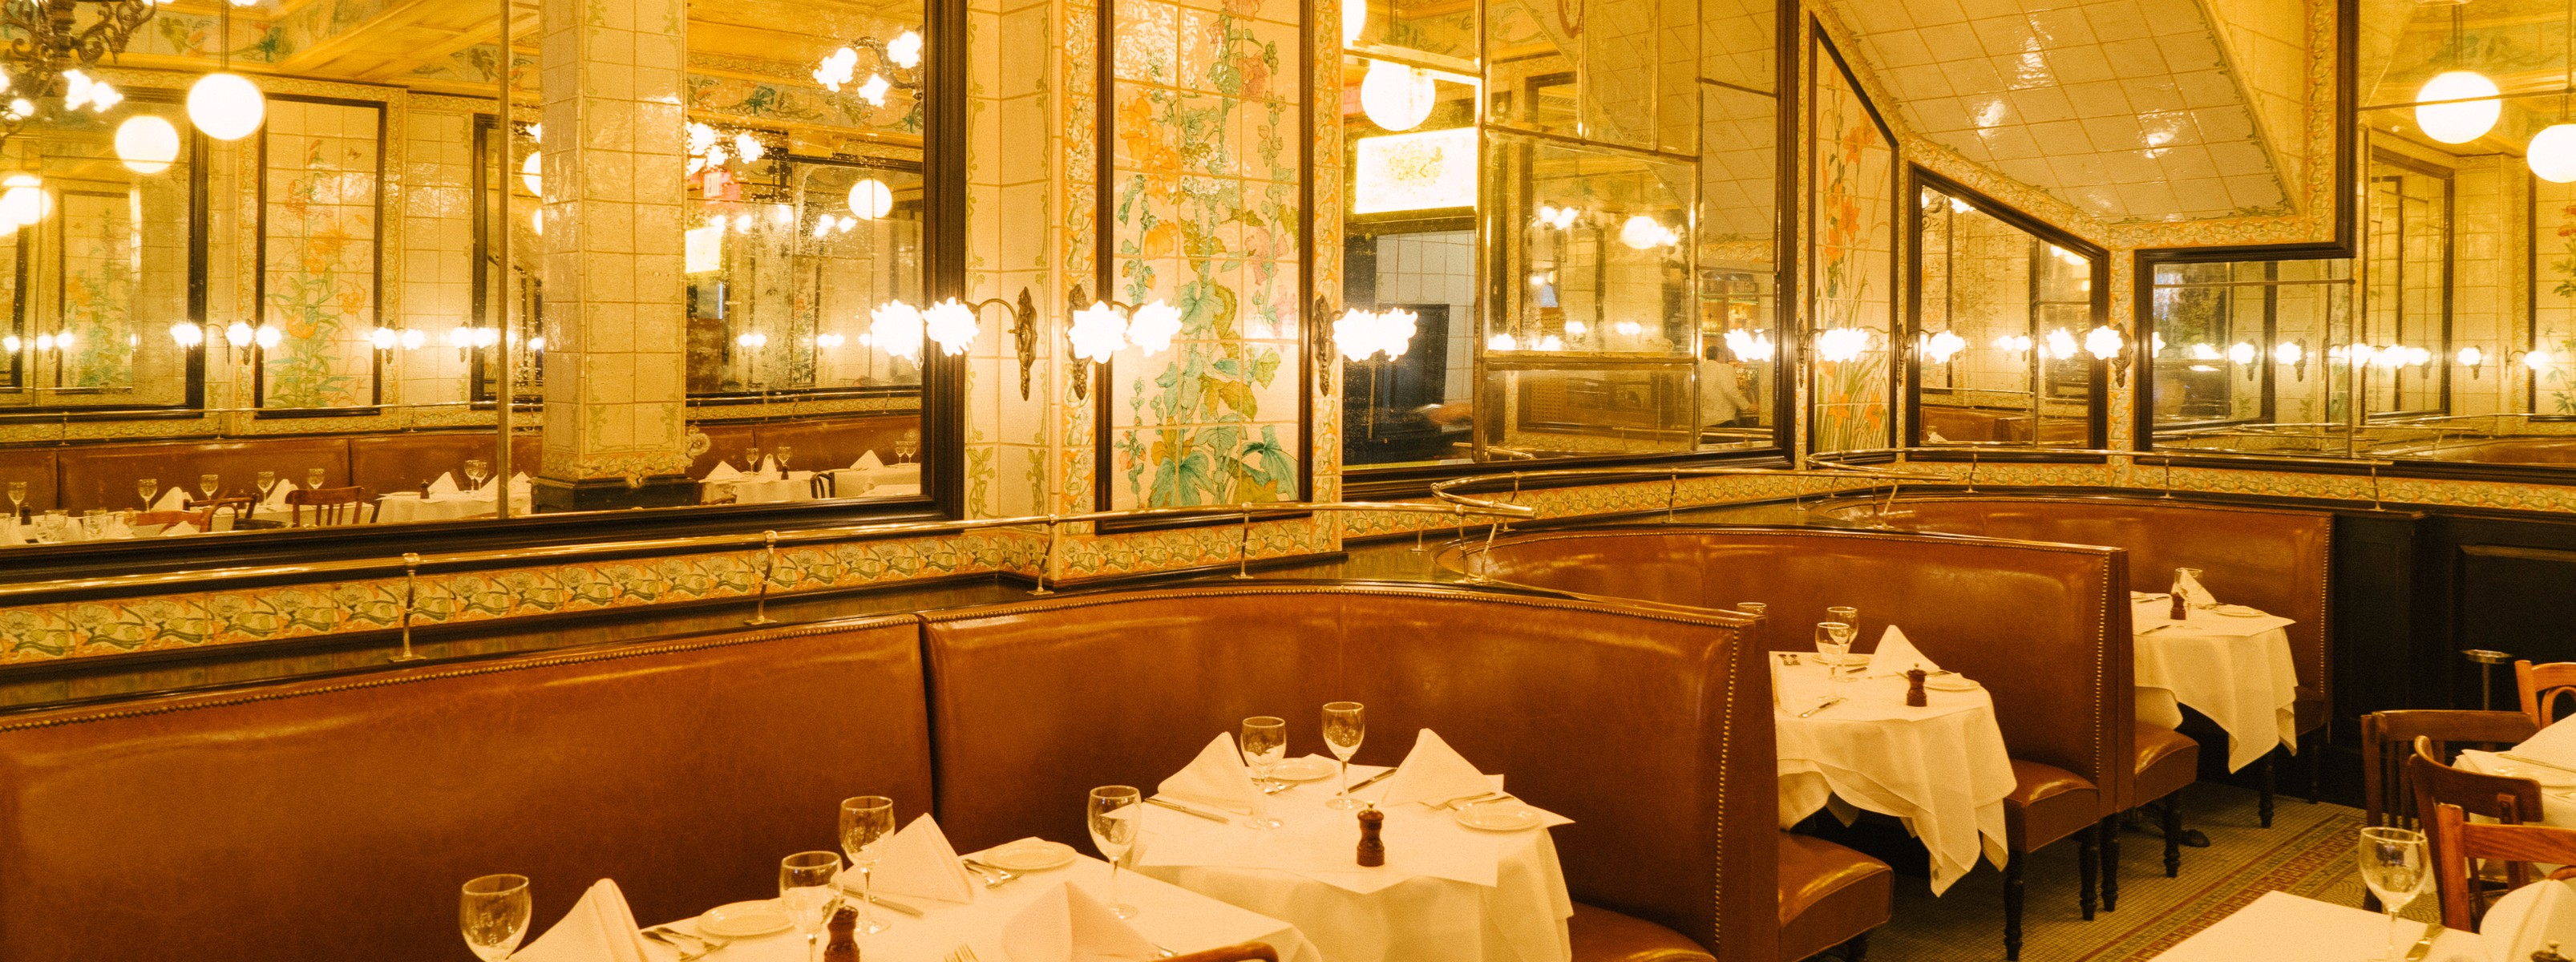 The Best Places To Eat In The Financial District - Financial District - New York - The Infatuation